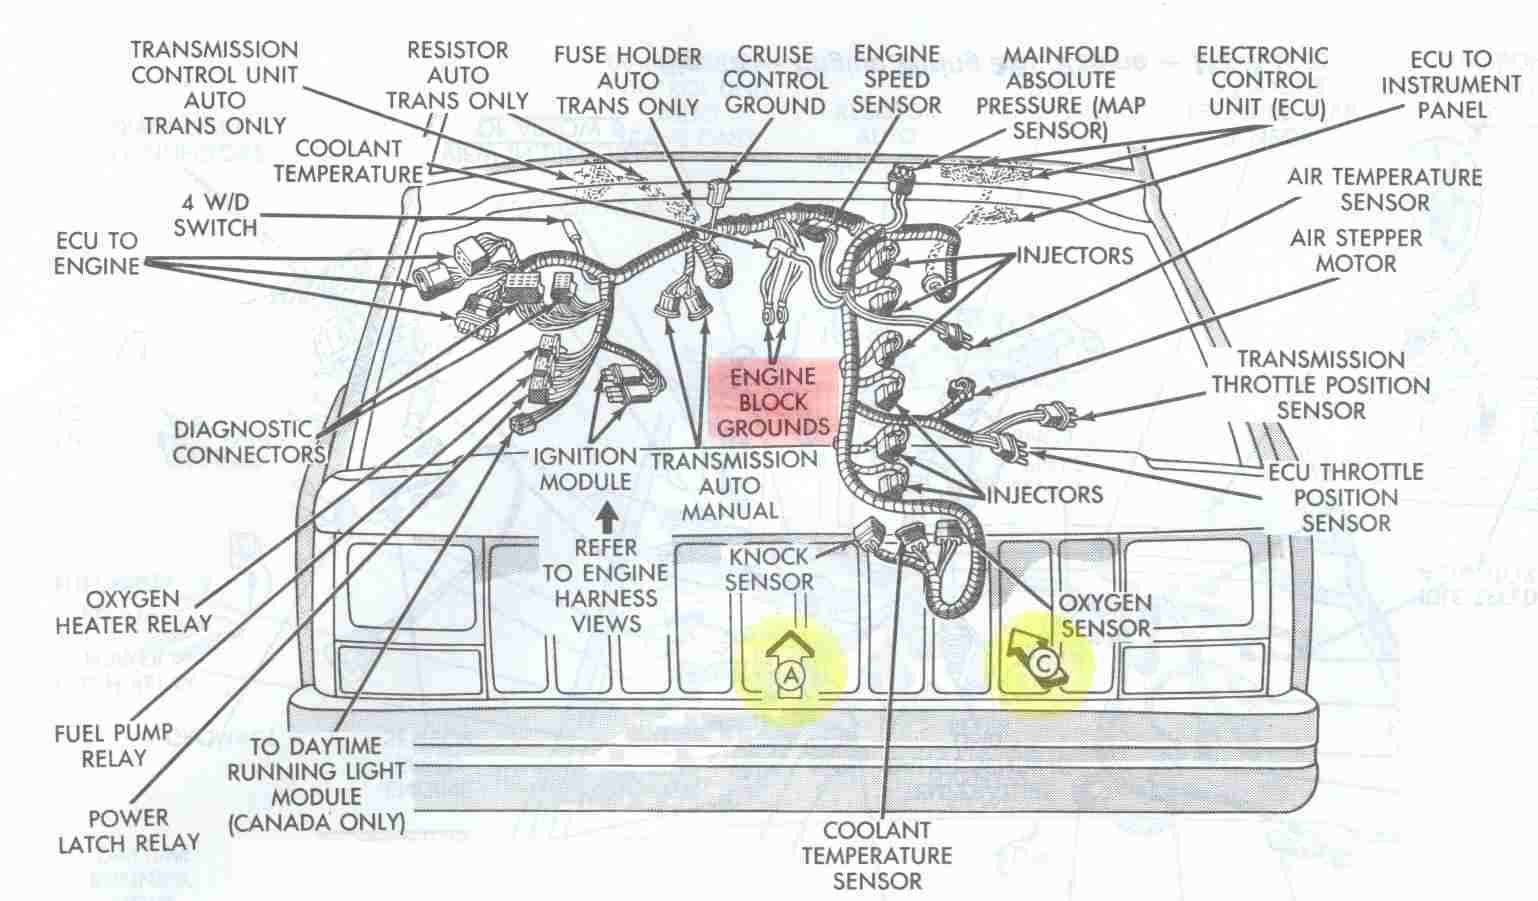 engine bay schematic showing major electrical ground points for 4 0l rh pinterest com 1996 Jeep Grand Cherokee Engine Diagram 2000 Jeep Grand Cherokee Ground Locations